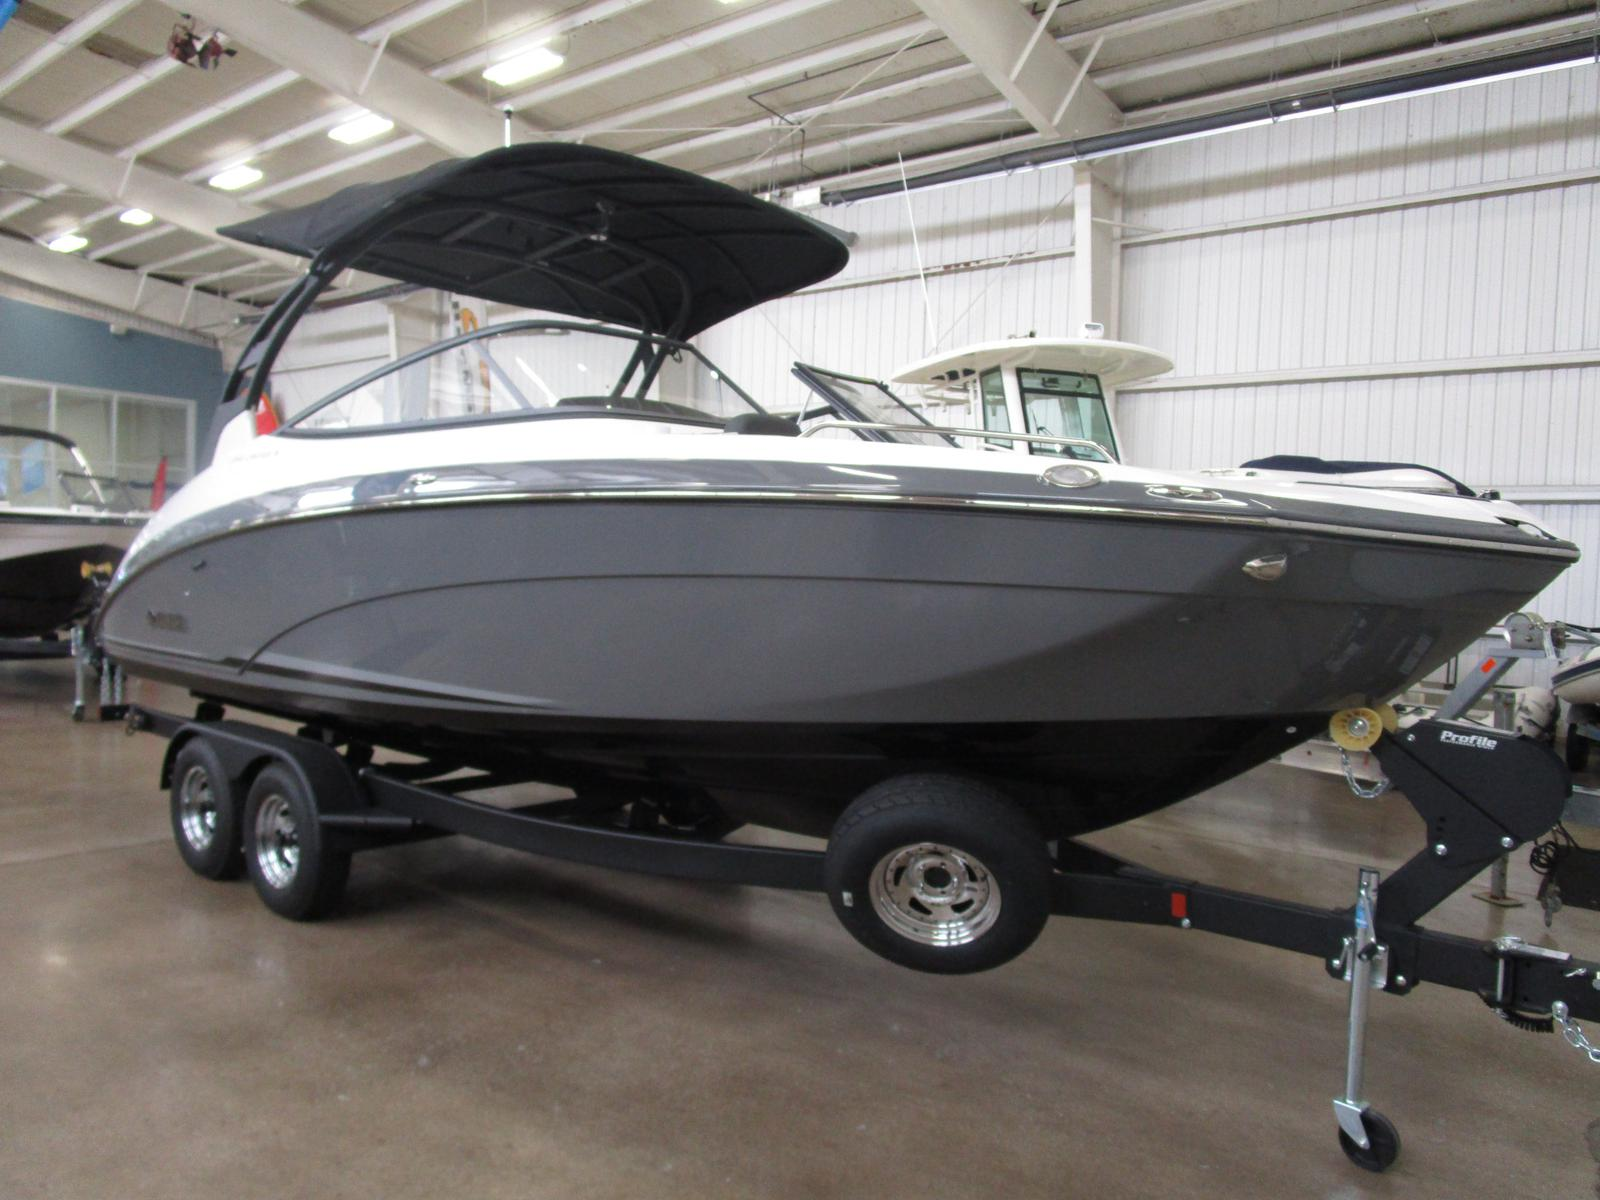 2019 Yamaha boat for sale, model of the boat is 242 Limited S E-Series & Image # 1 of 7